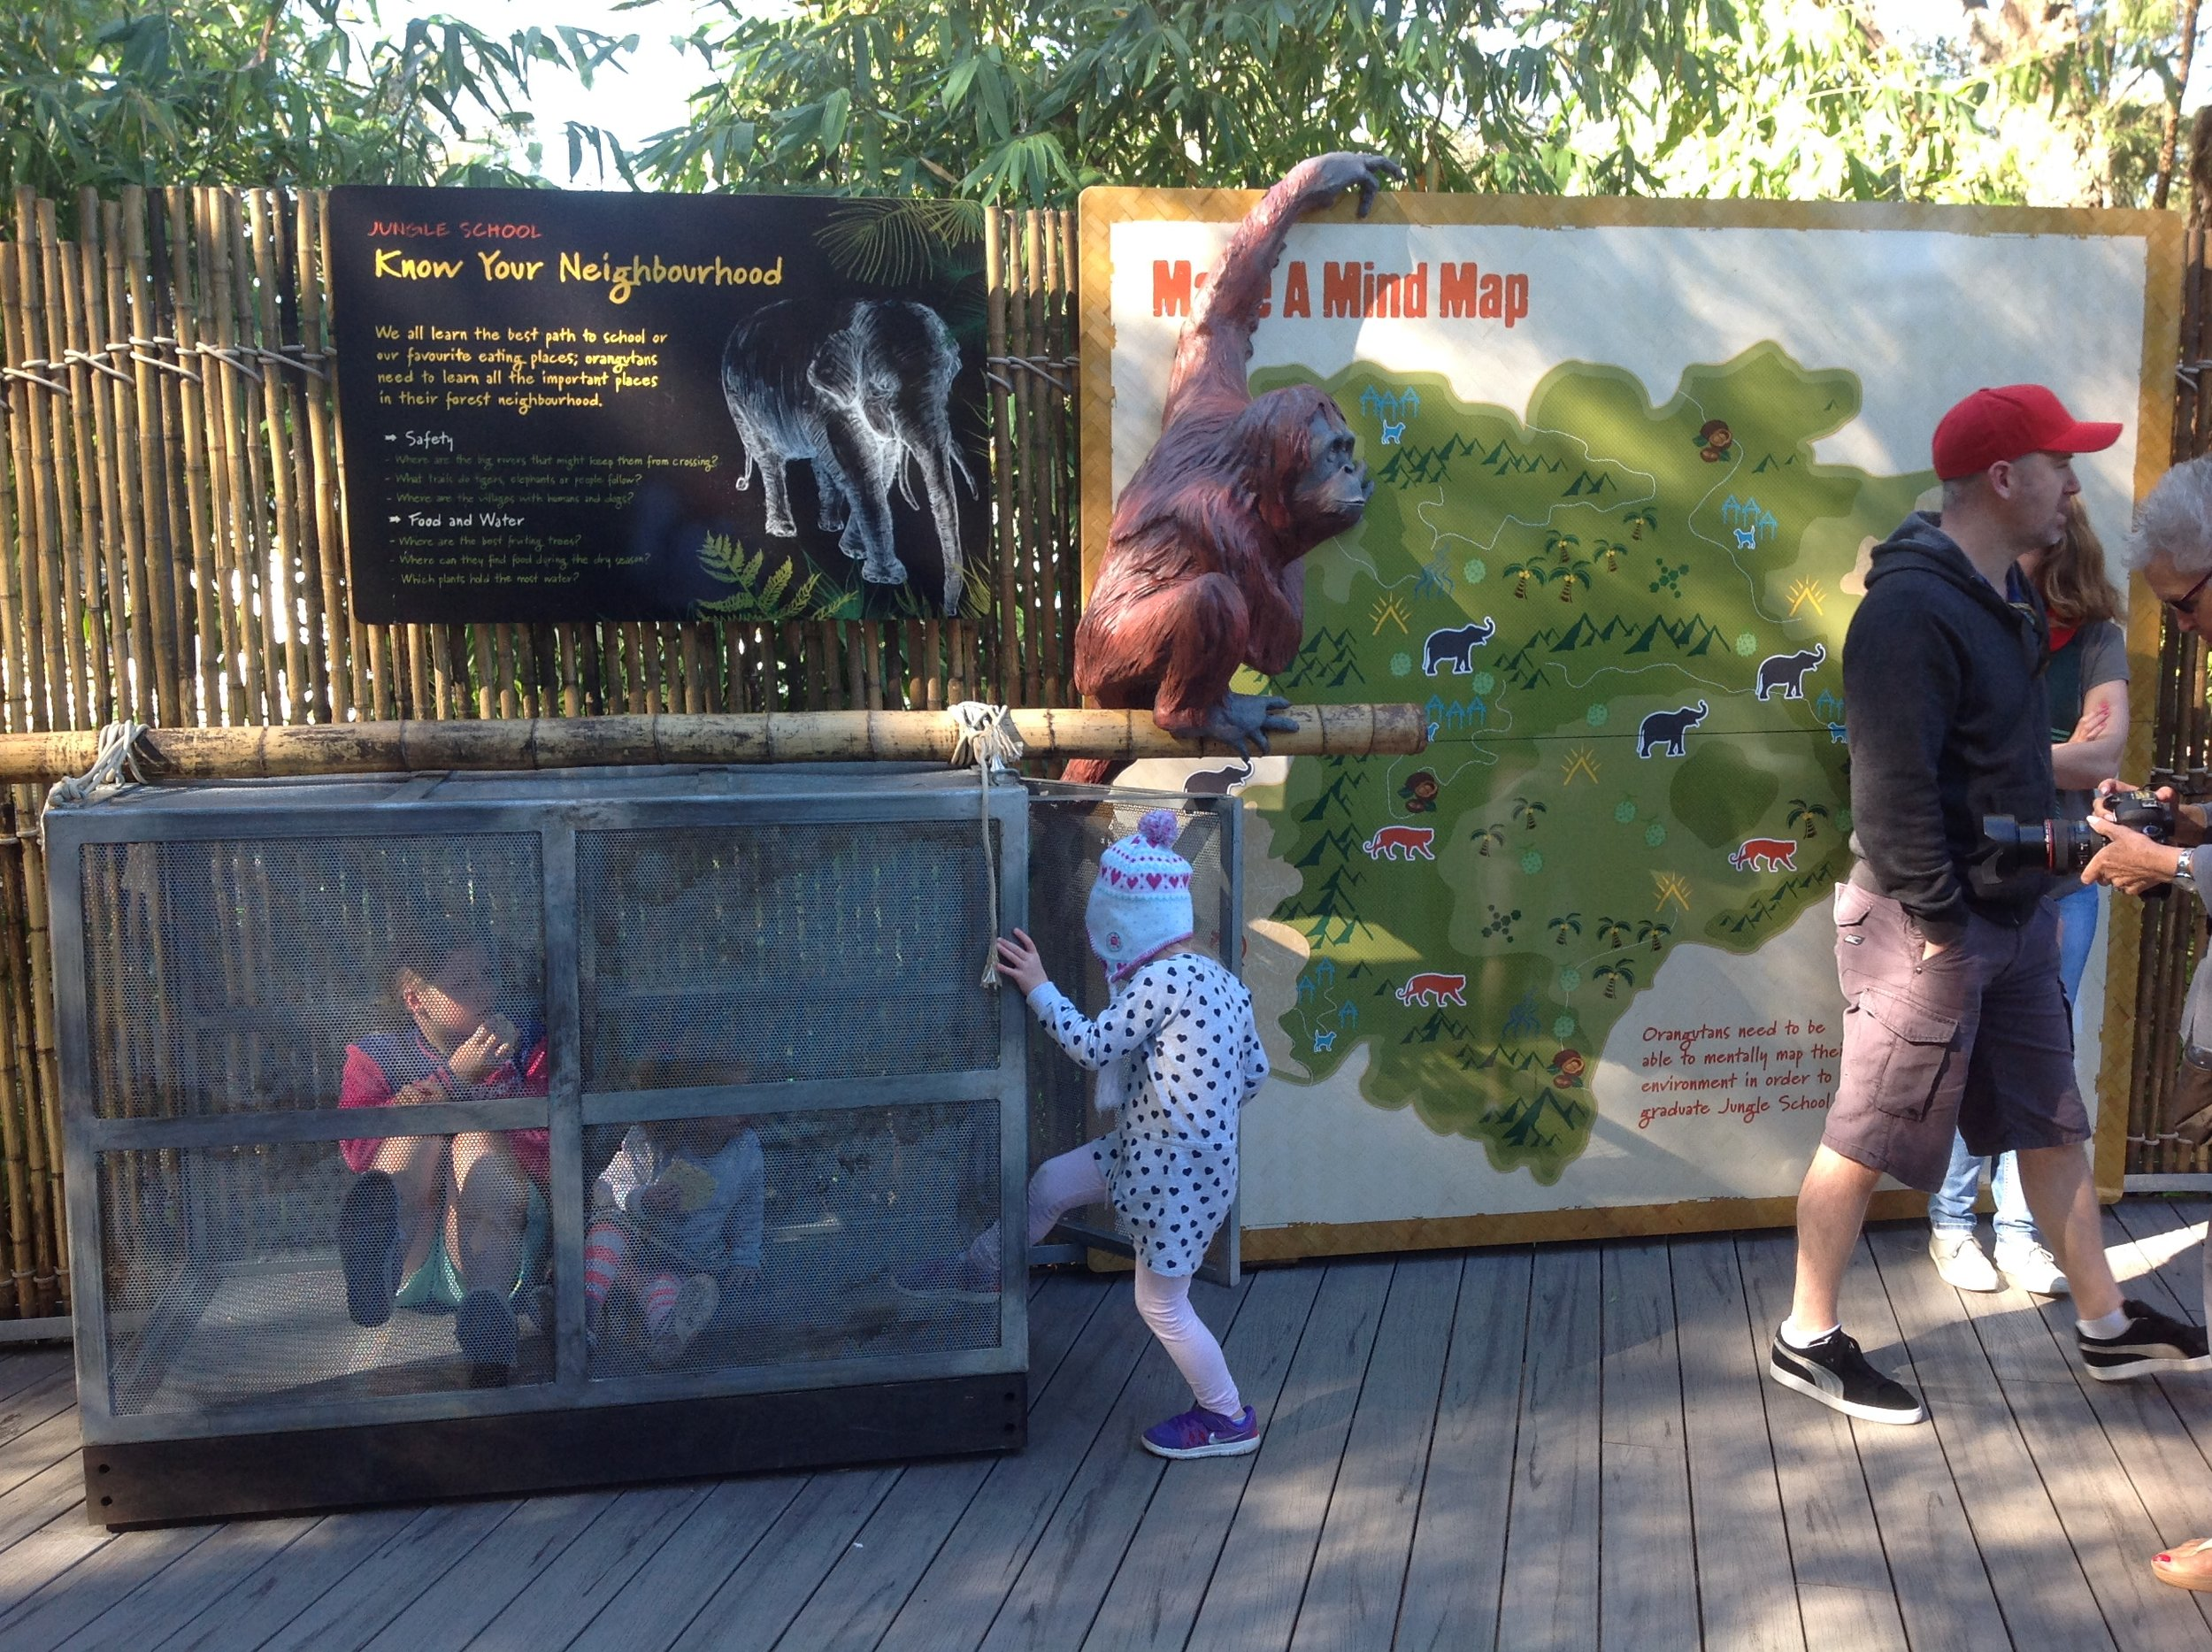 release crate and Orangutan sculpture Perth Zoo 2014.JPG